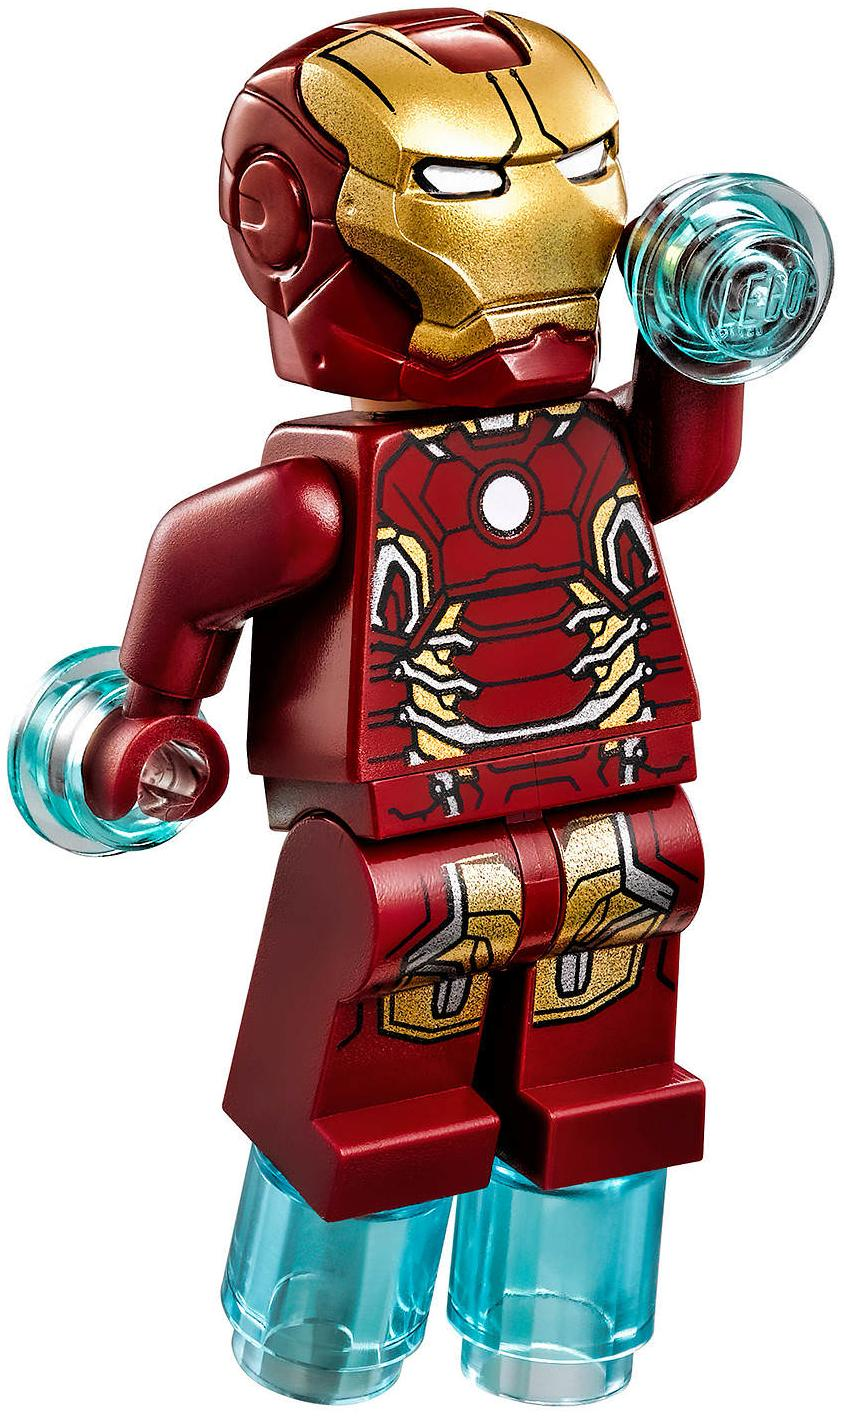 LEGO Iron Man Mark 43 Suit Armor Minifigure